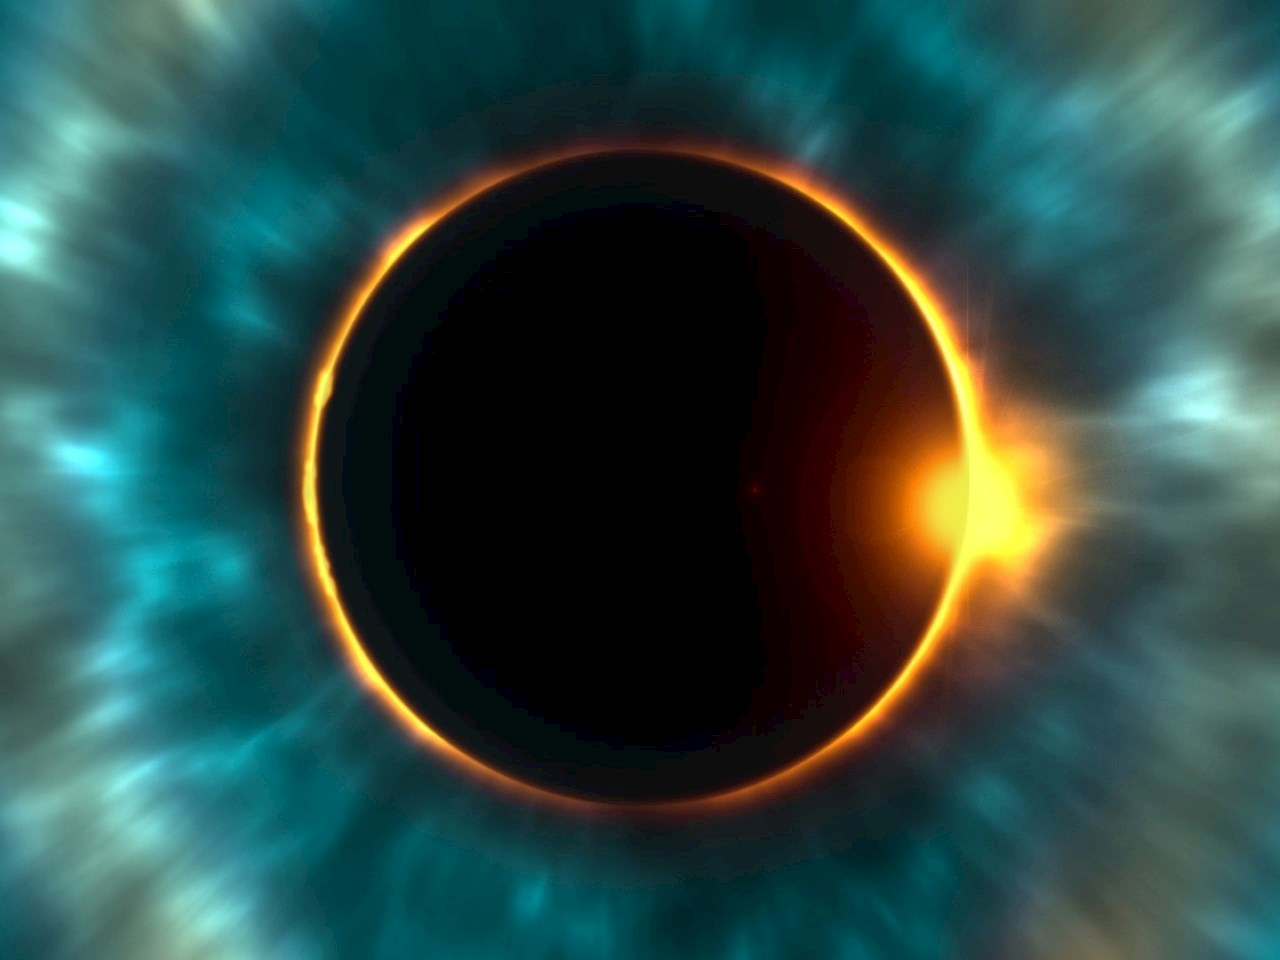 Illustration of a total solar eclipse